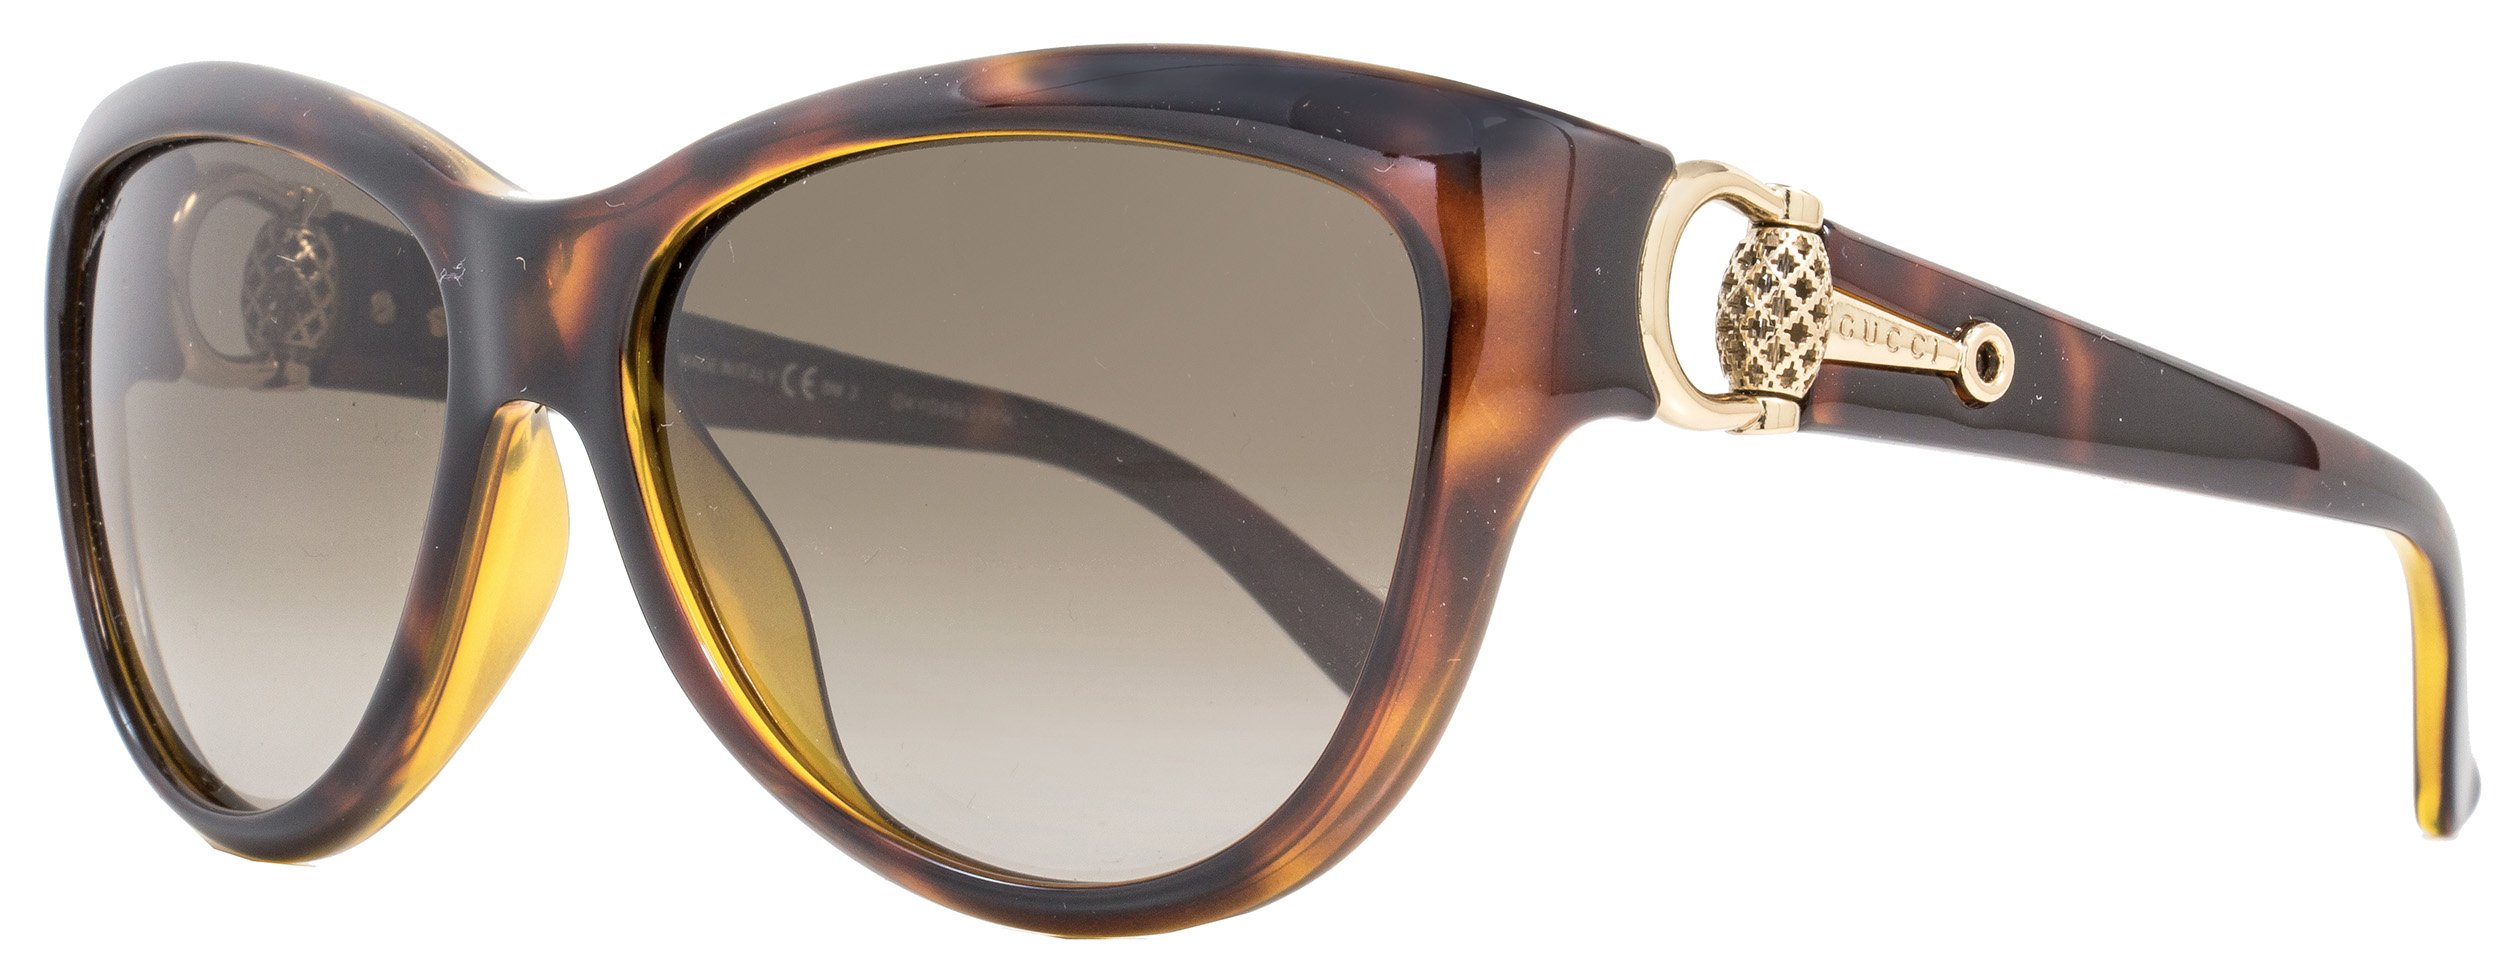 Gucci Women's GG 3711/S Chocolate Havana/Brown Gradient Sunglasses by Gucci (Image #1)